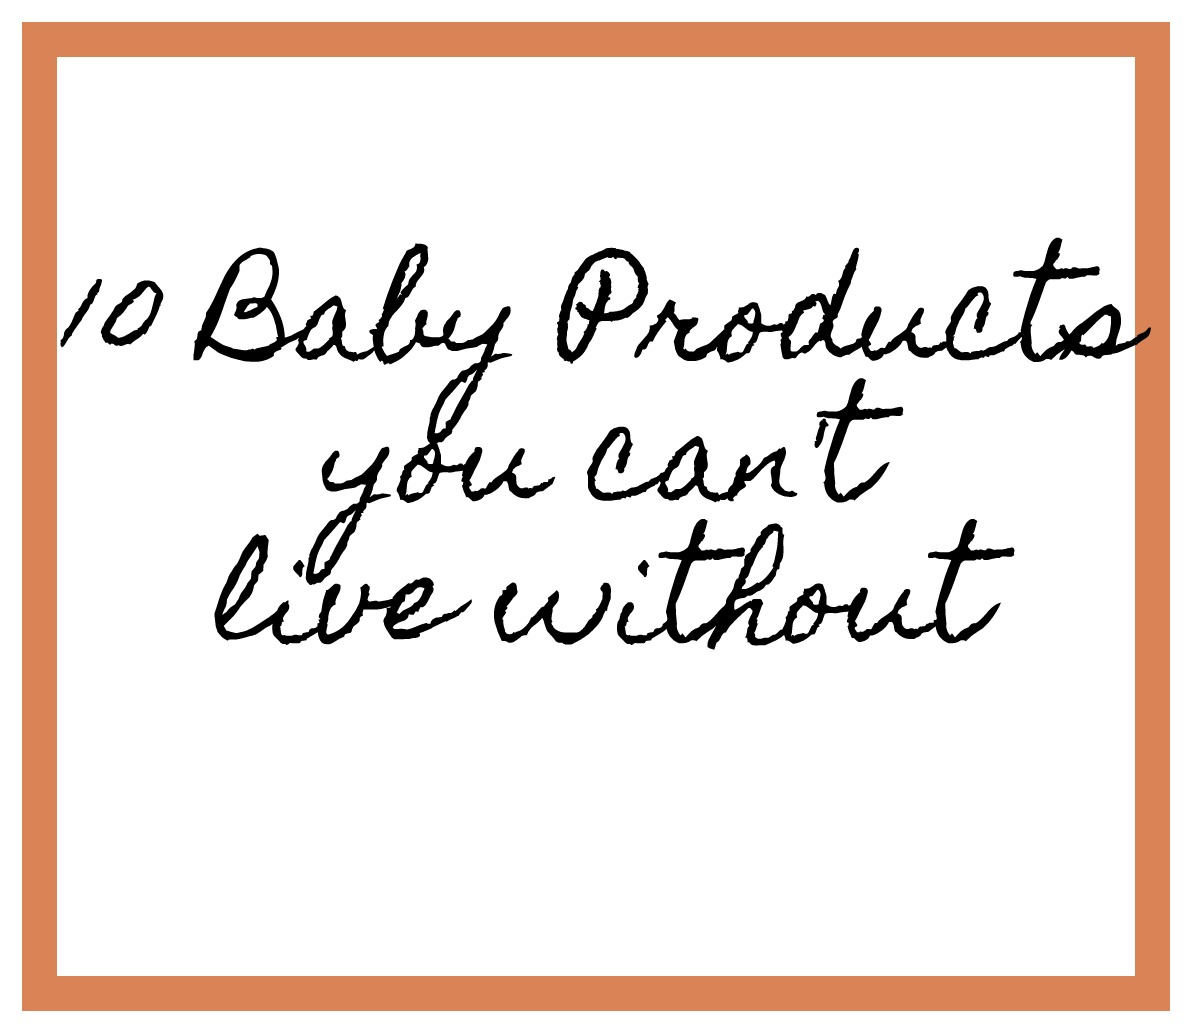 10 Baby Products You Can't Live Without